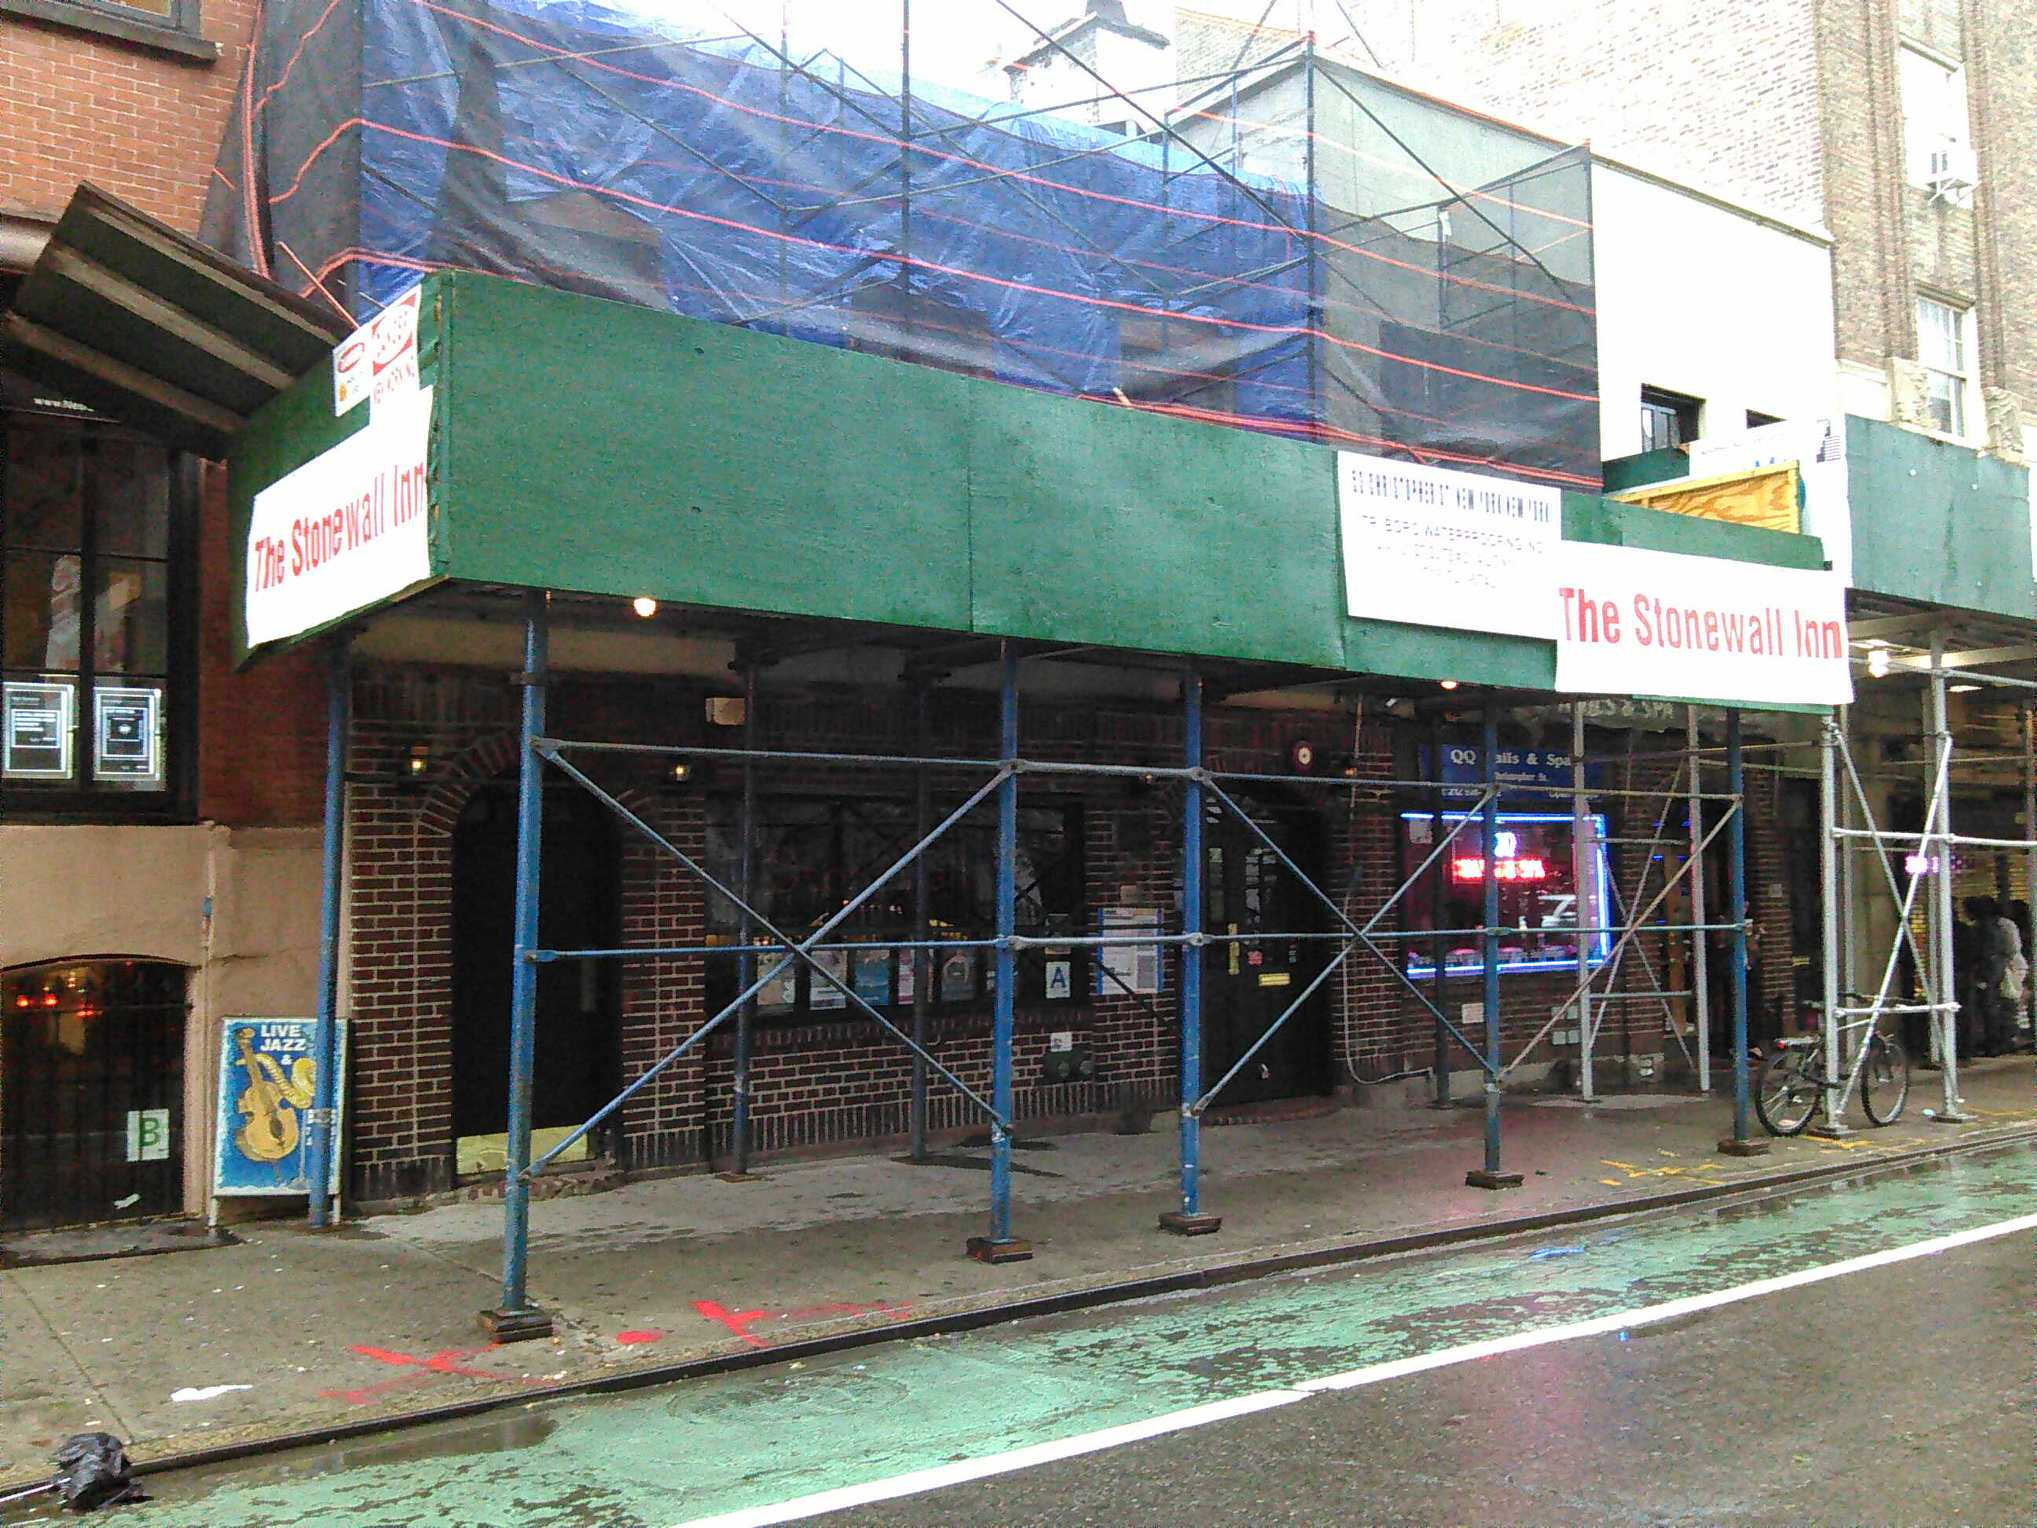 New signs on the green plywood in front of the Stonewall Inn announce what is under the scaffolding.